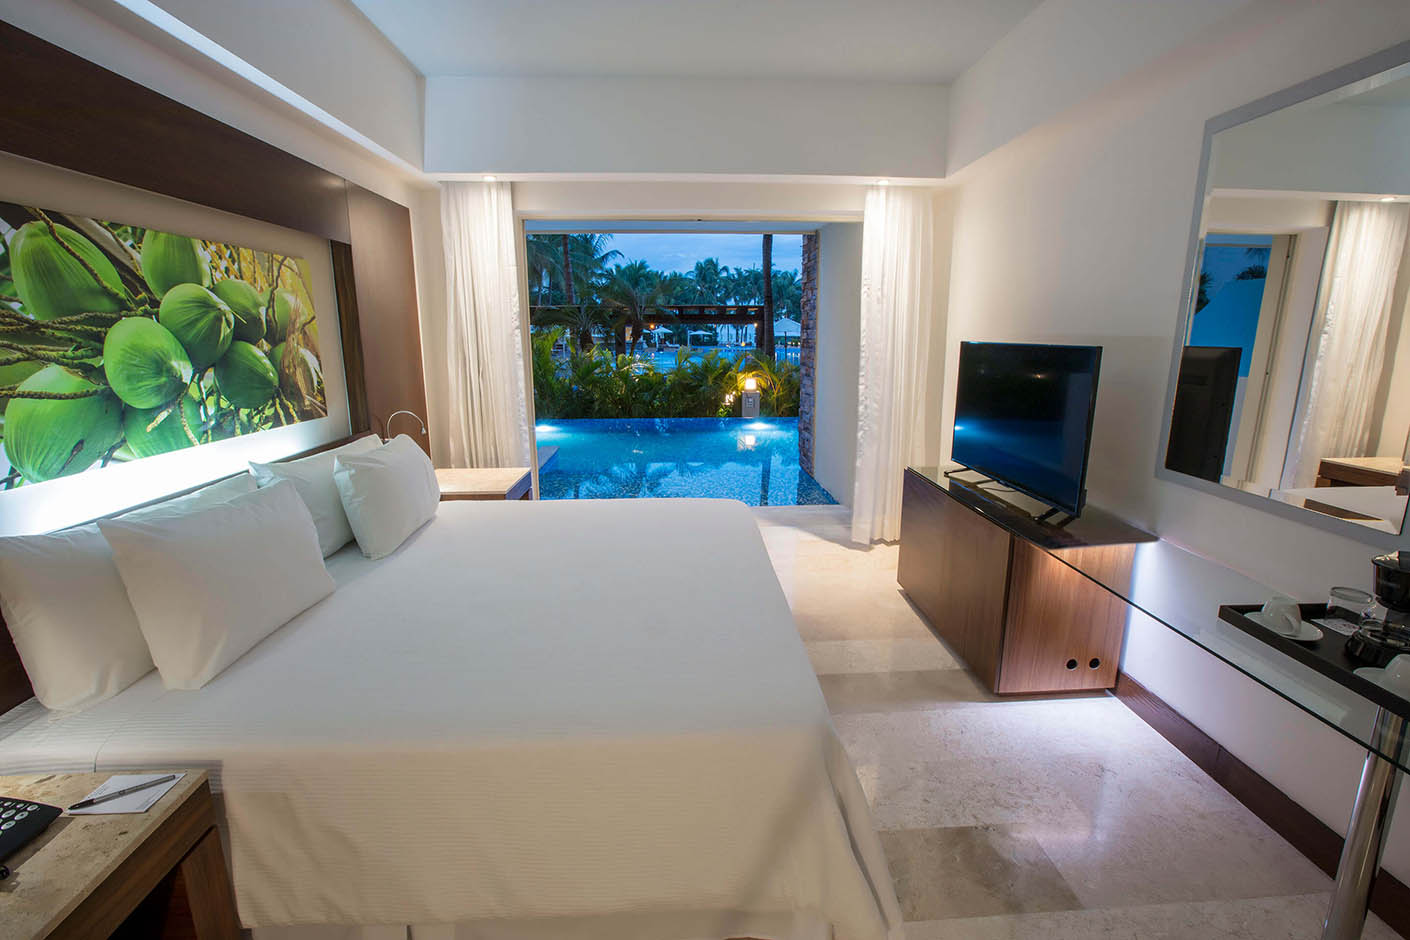 pool outside of hotel room with king bed